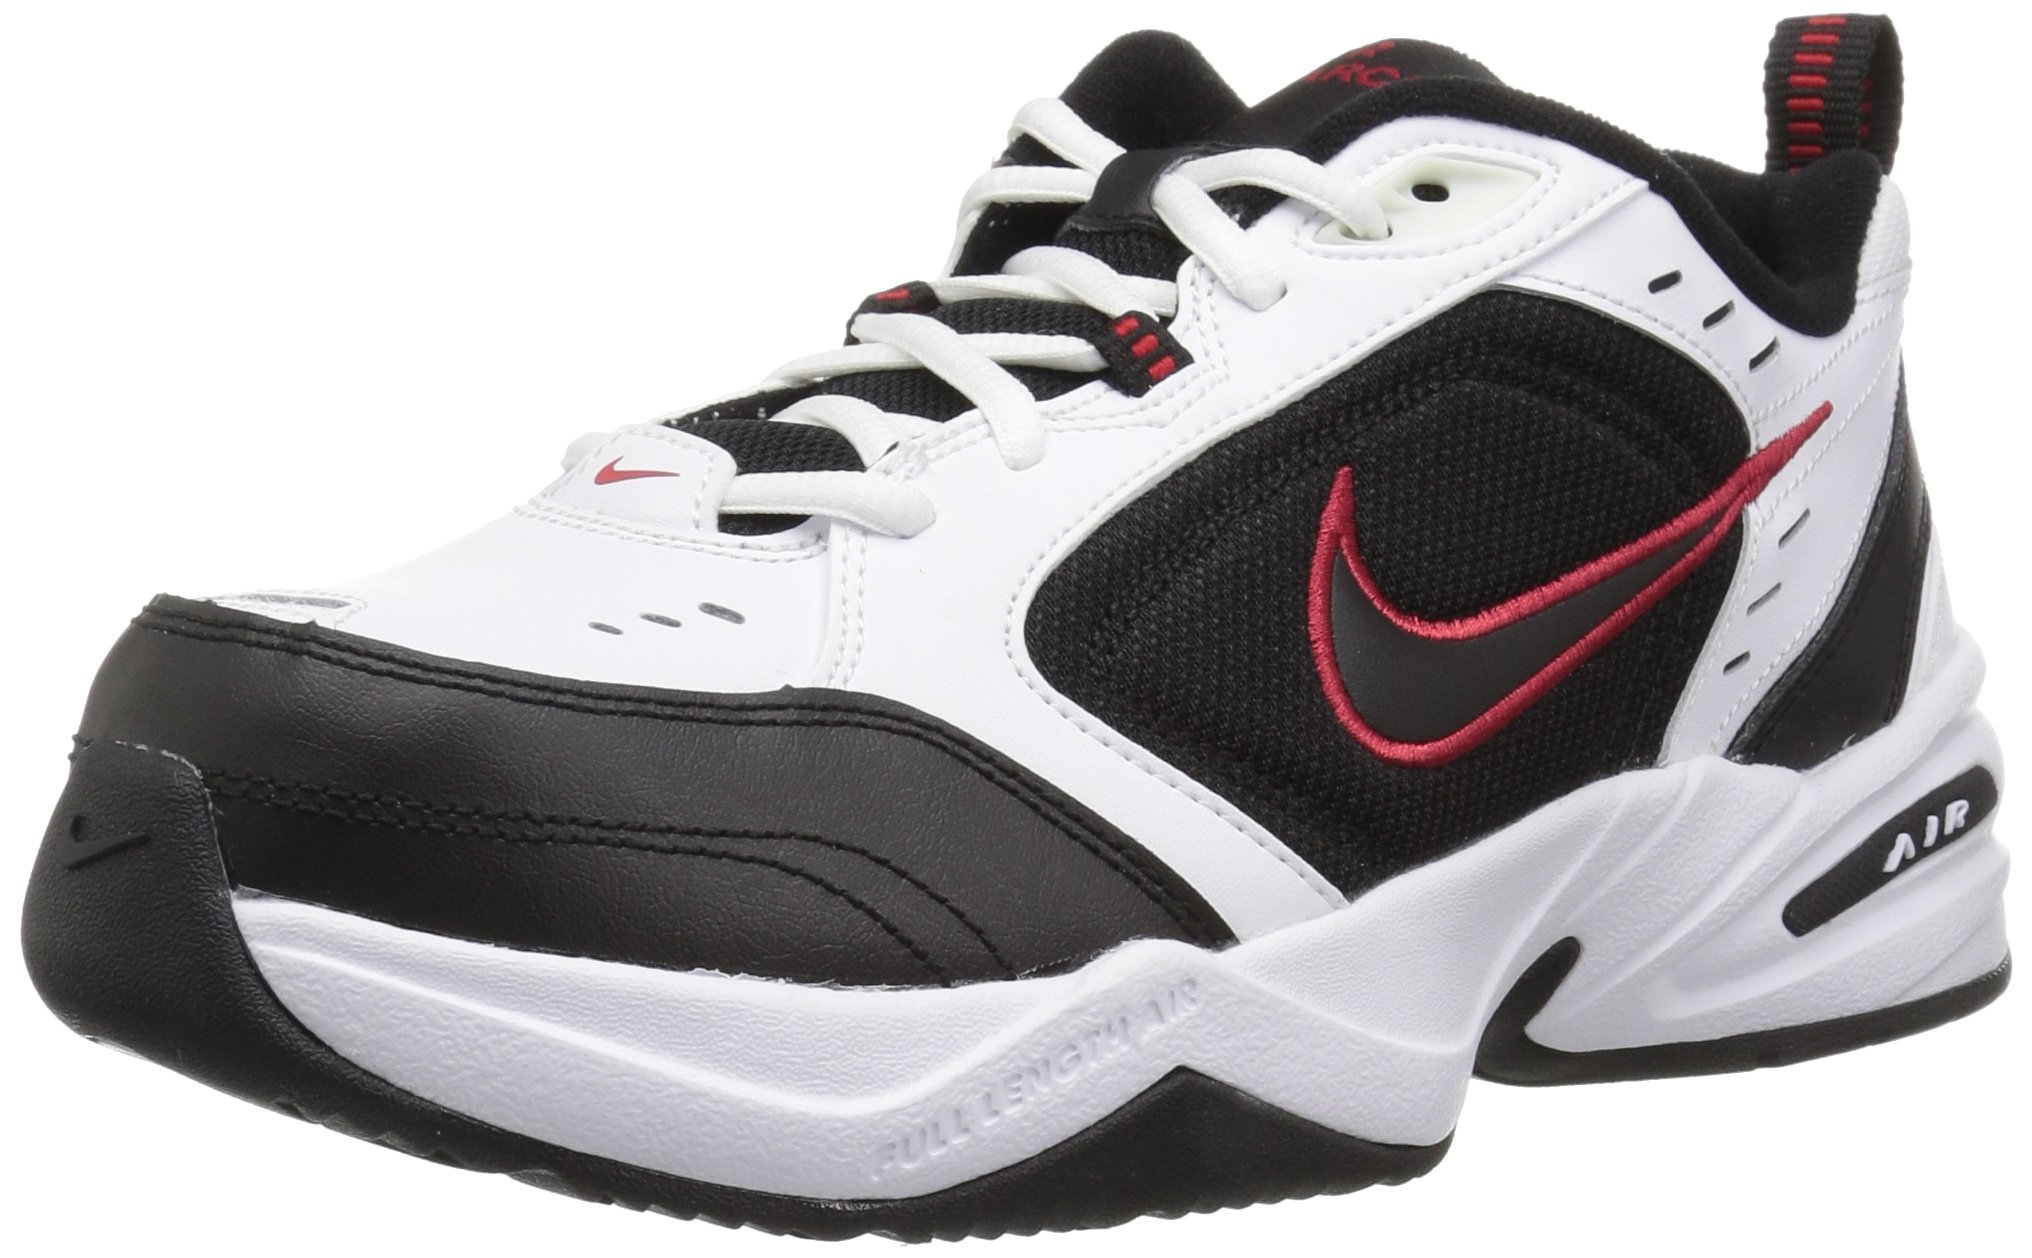 e855652f5d56 Galleon - Nike Men s Air Monarch IV Cross Trainer